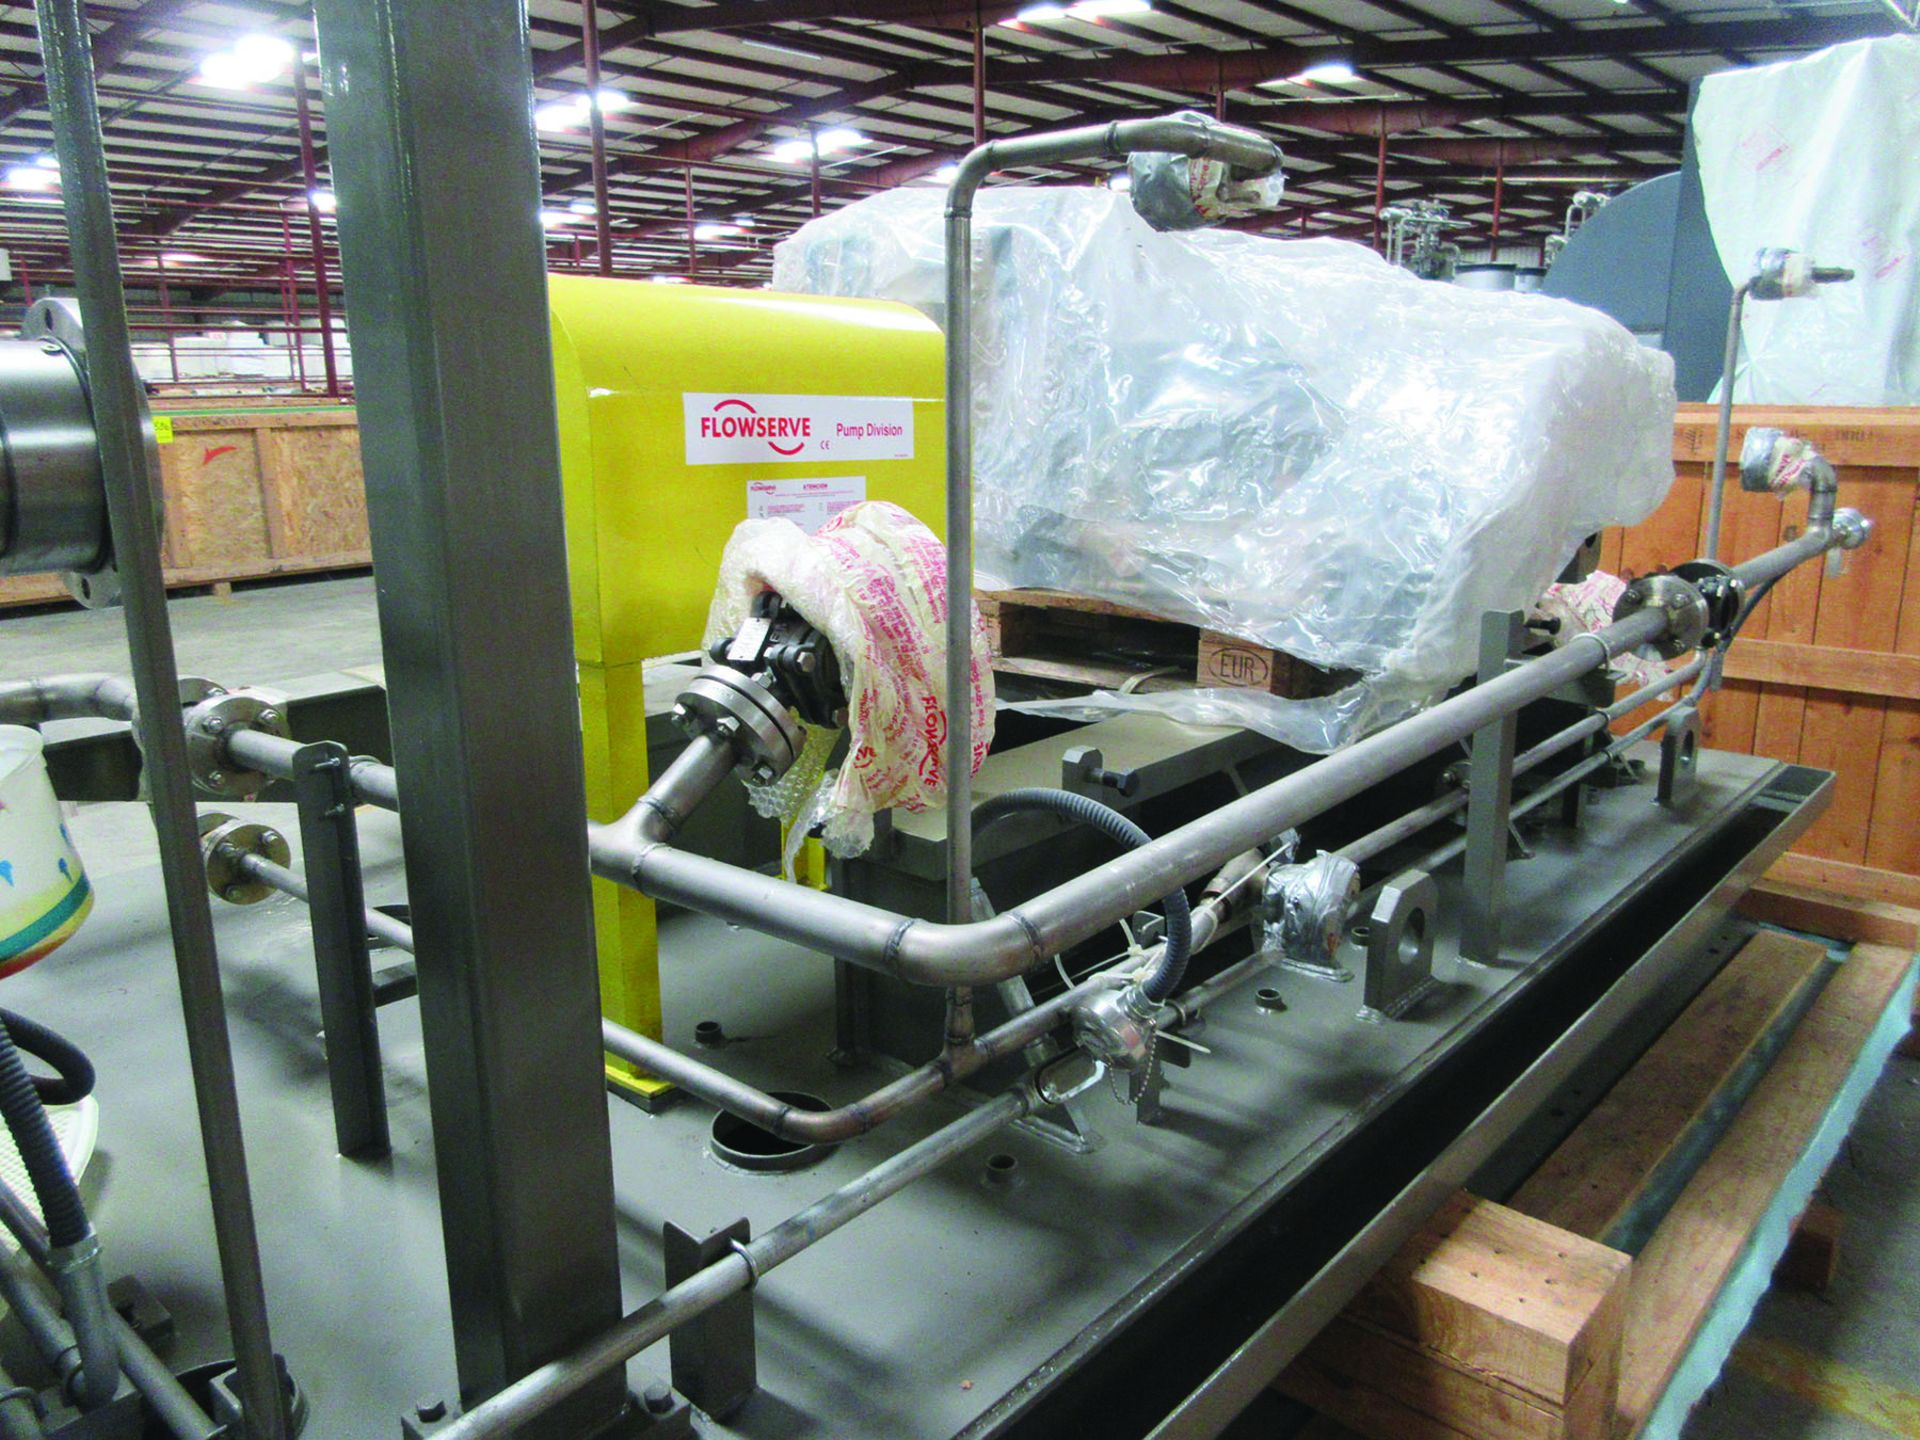 PUMP SLED: BARREL START-UP BOILER FEED PUMP, SIZE: 4X12CSB-12, 1,200 GPM, 3,580 RPM, 12 GPM LUBE OIL - Image 6 of 11